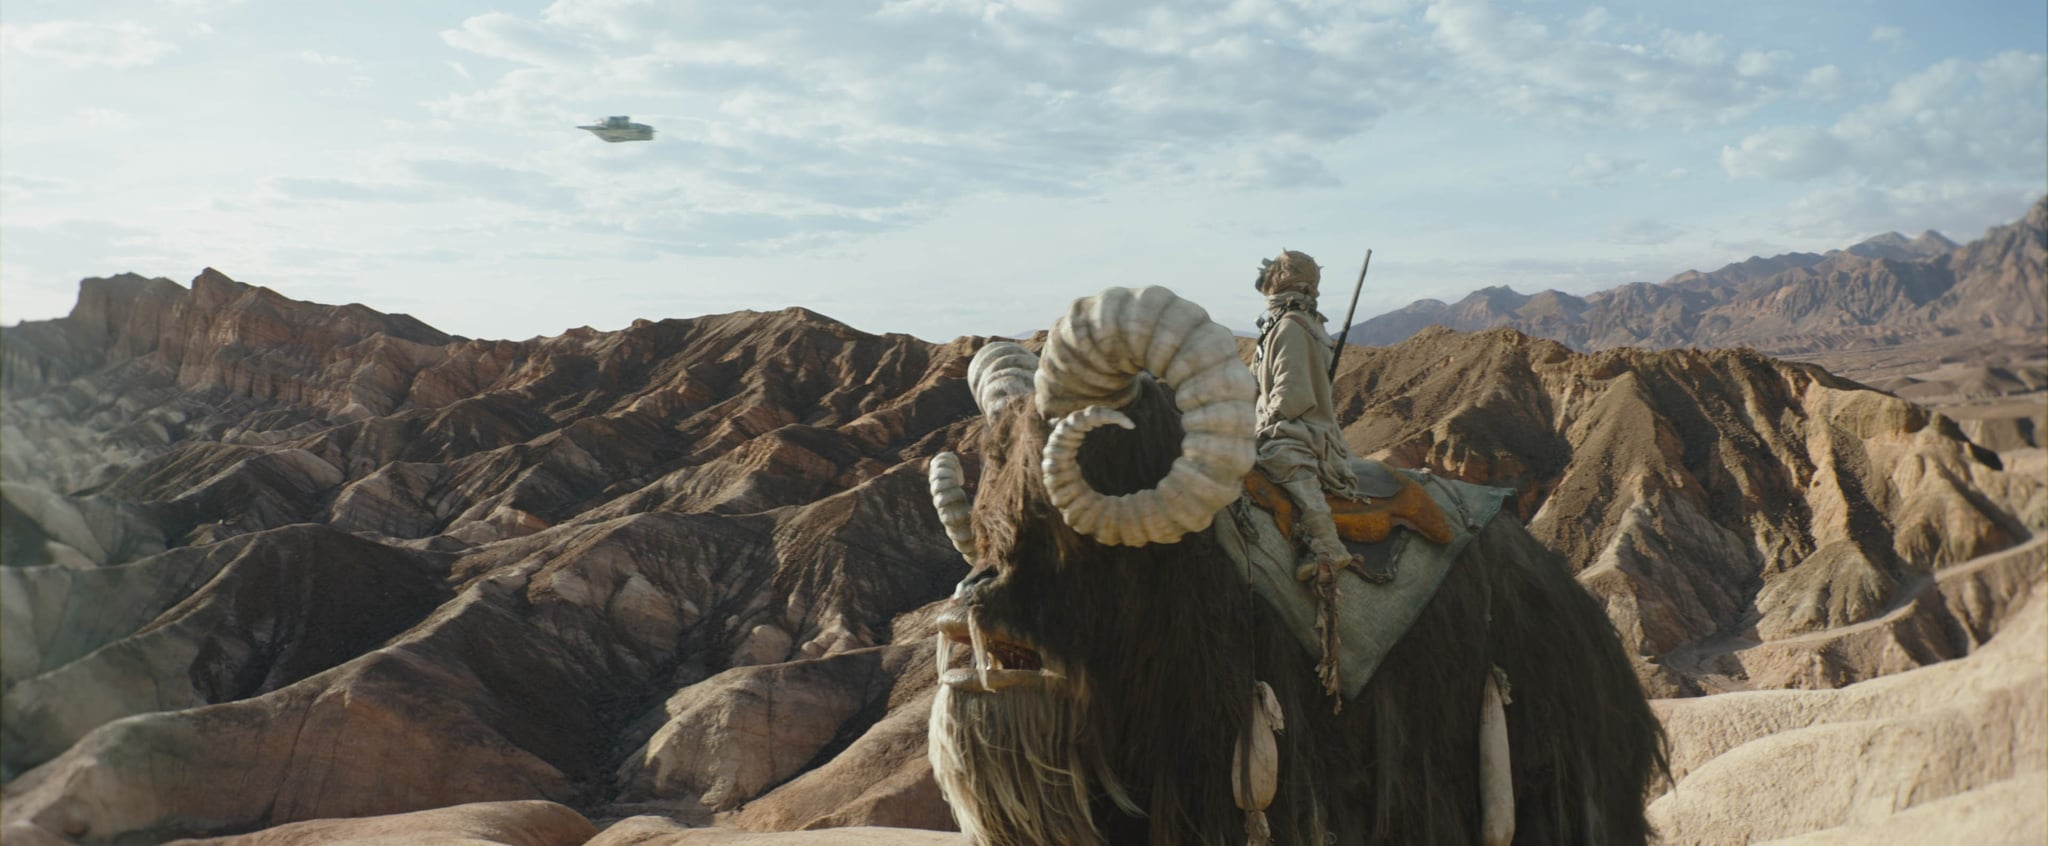 THE MANDALORIAN, Tusken Raider riding a Bantha, (Season 2, premiered Oct. 30, 2020). photo: Disney+/Lucasfilm / Courtesy Everett Collection